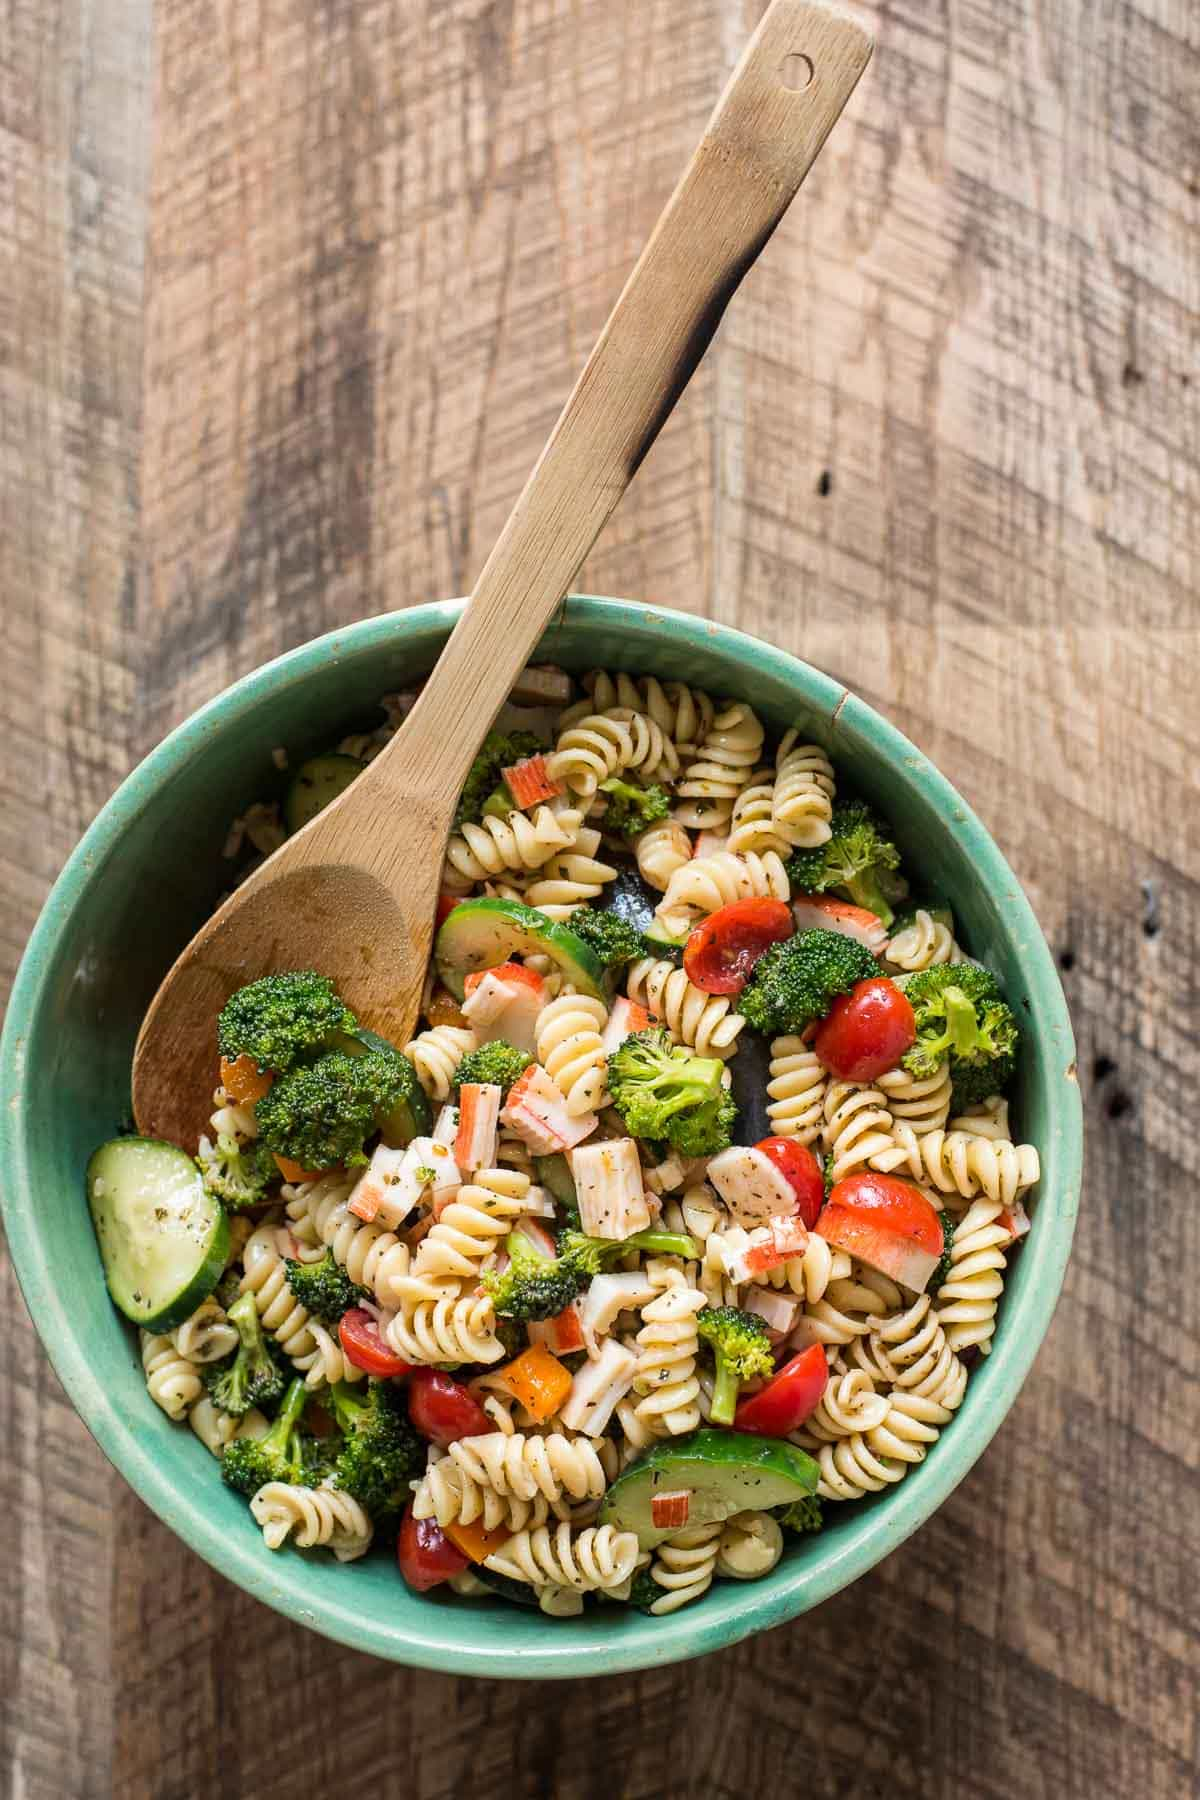 This Greek Pasta Salad with Feta Cheese is loaded with fresh veggies, crab, and a tangy Greek vinaigrette.